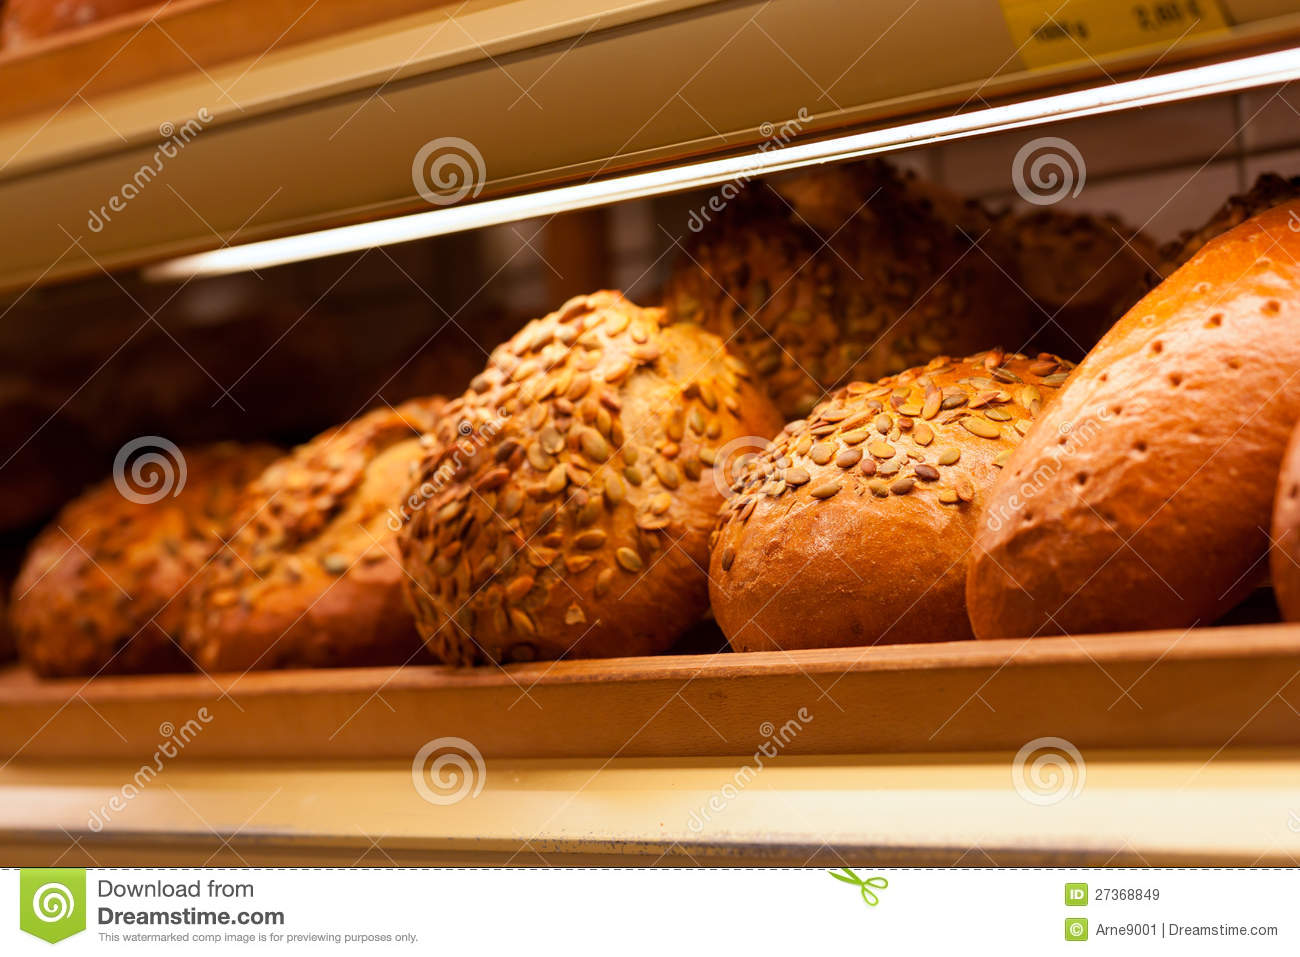 how to keep bakery bread fresh